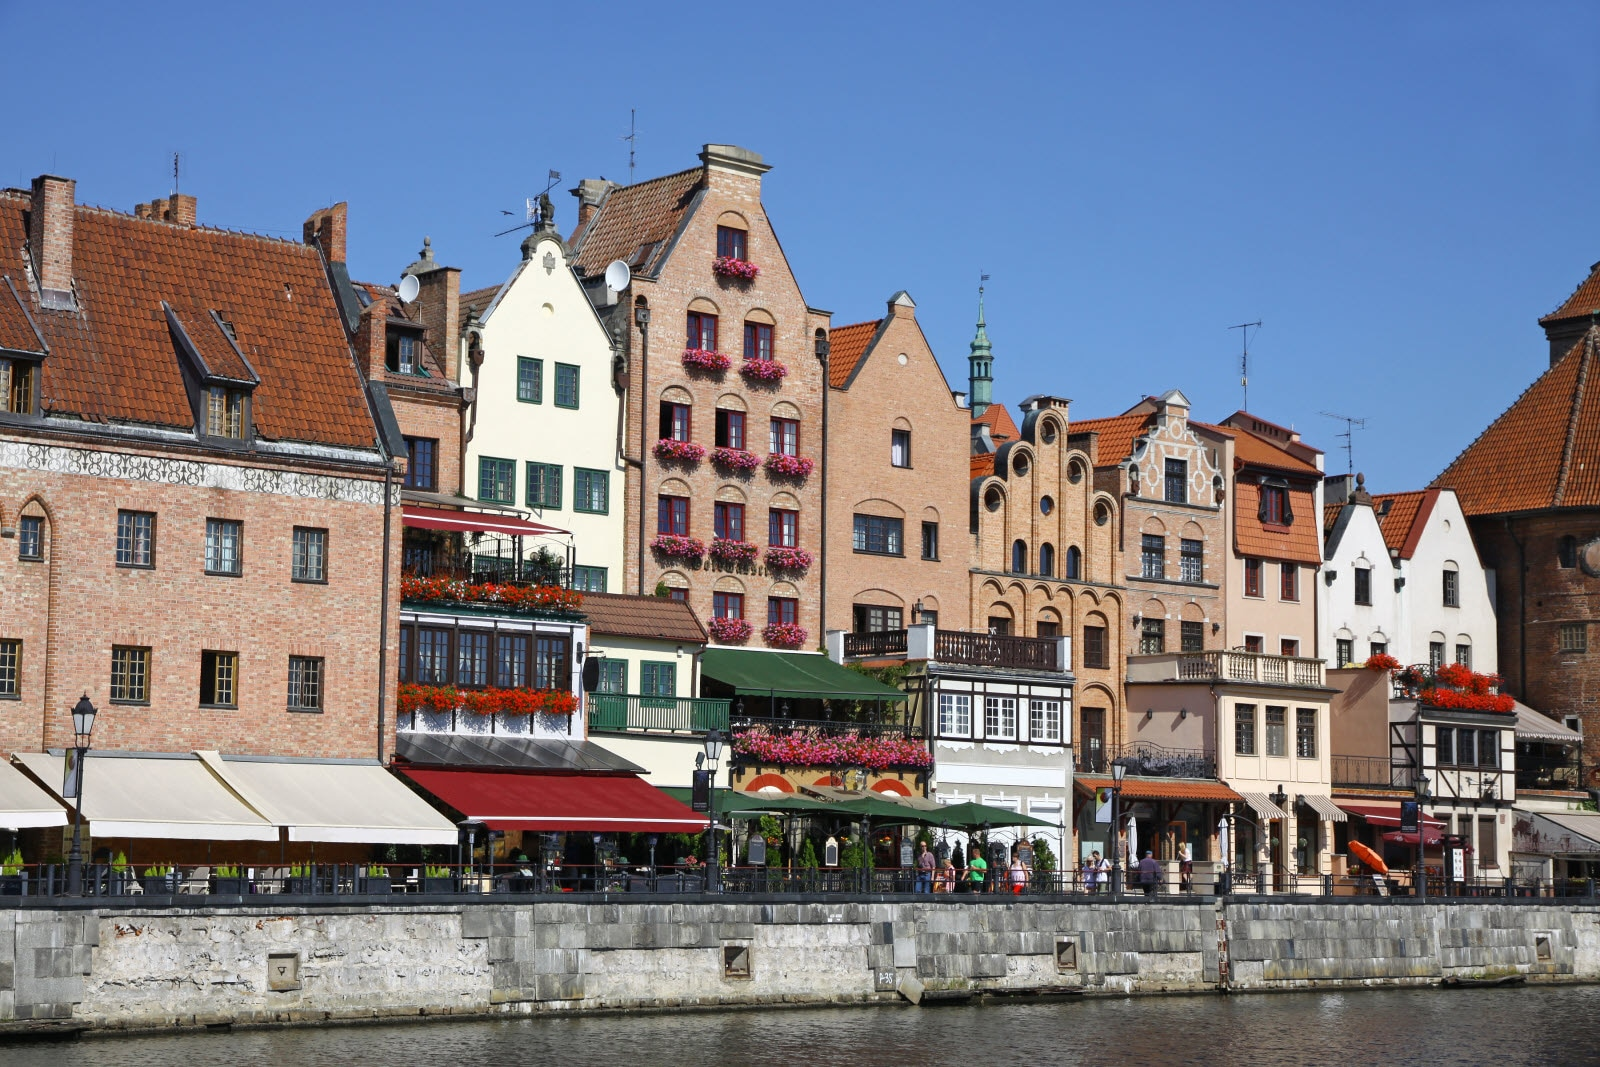 Colourful buildings in City of Gdansk, Poland